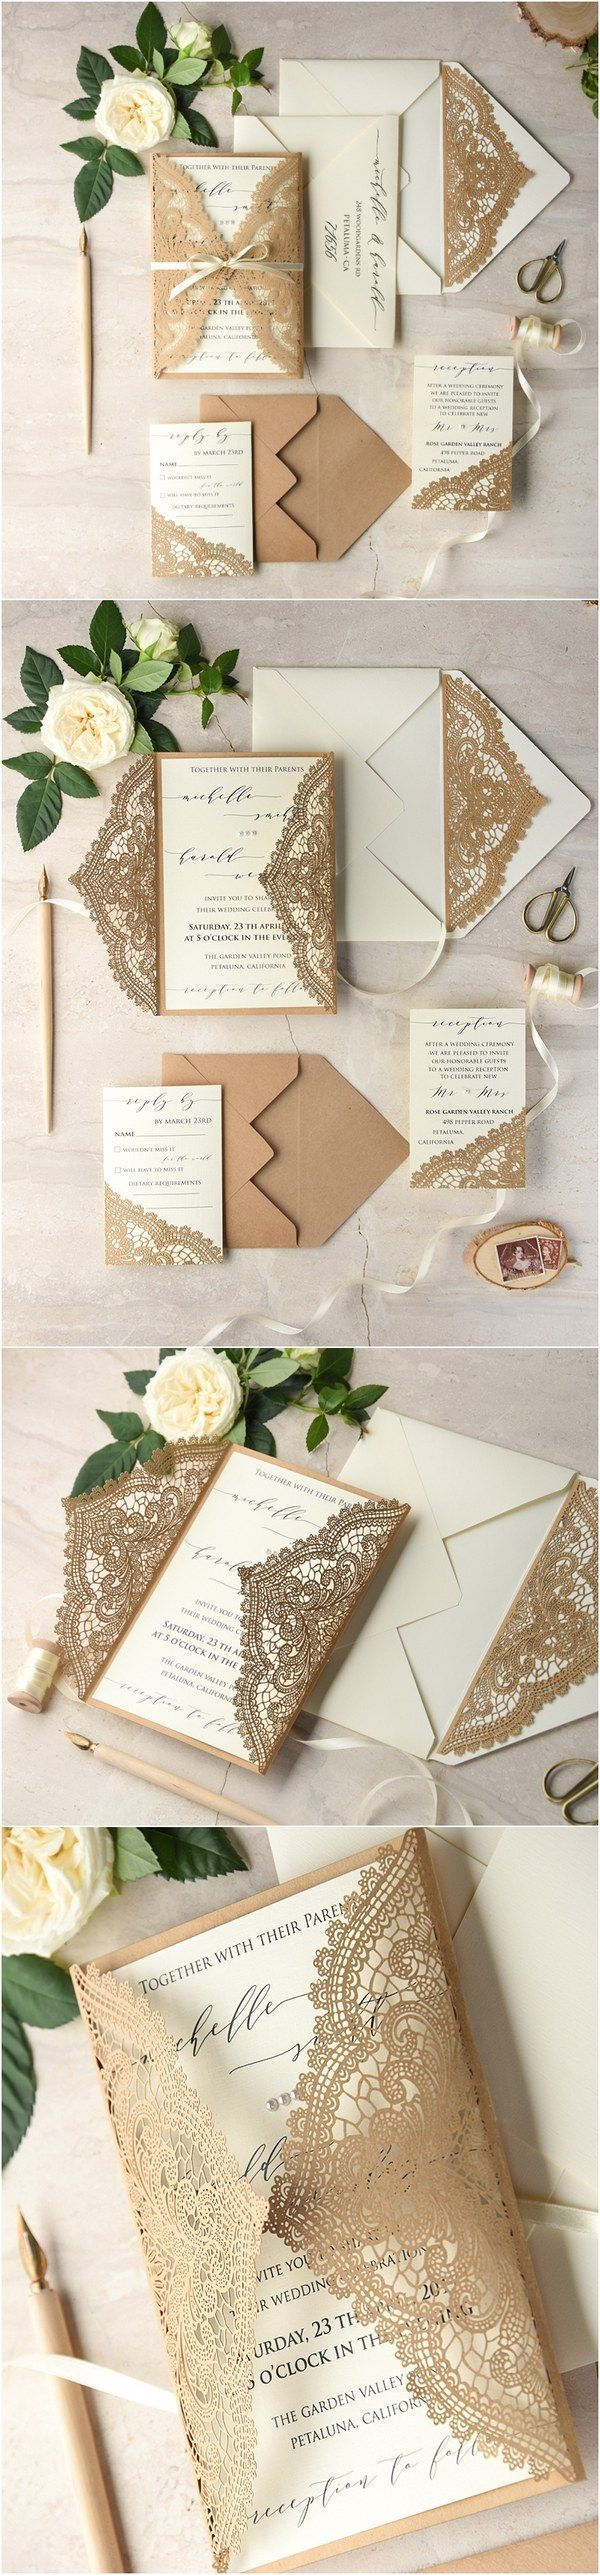 Ivory kraft paper laser cut lace rustic wedding invitations 01lCNz